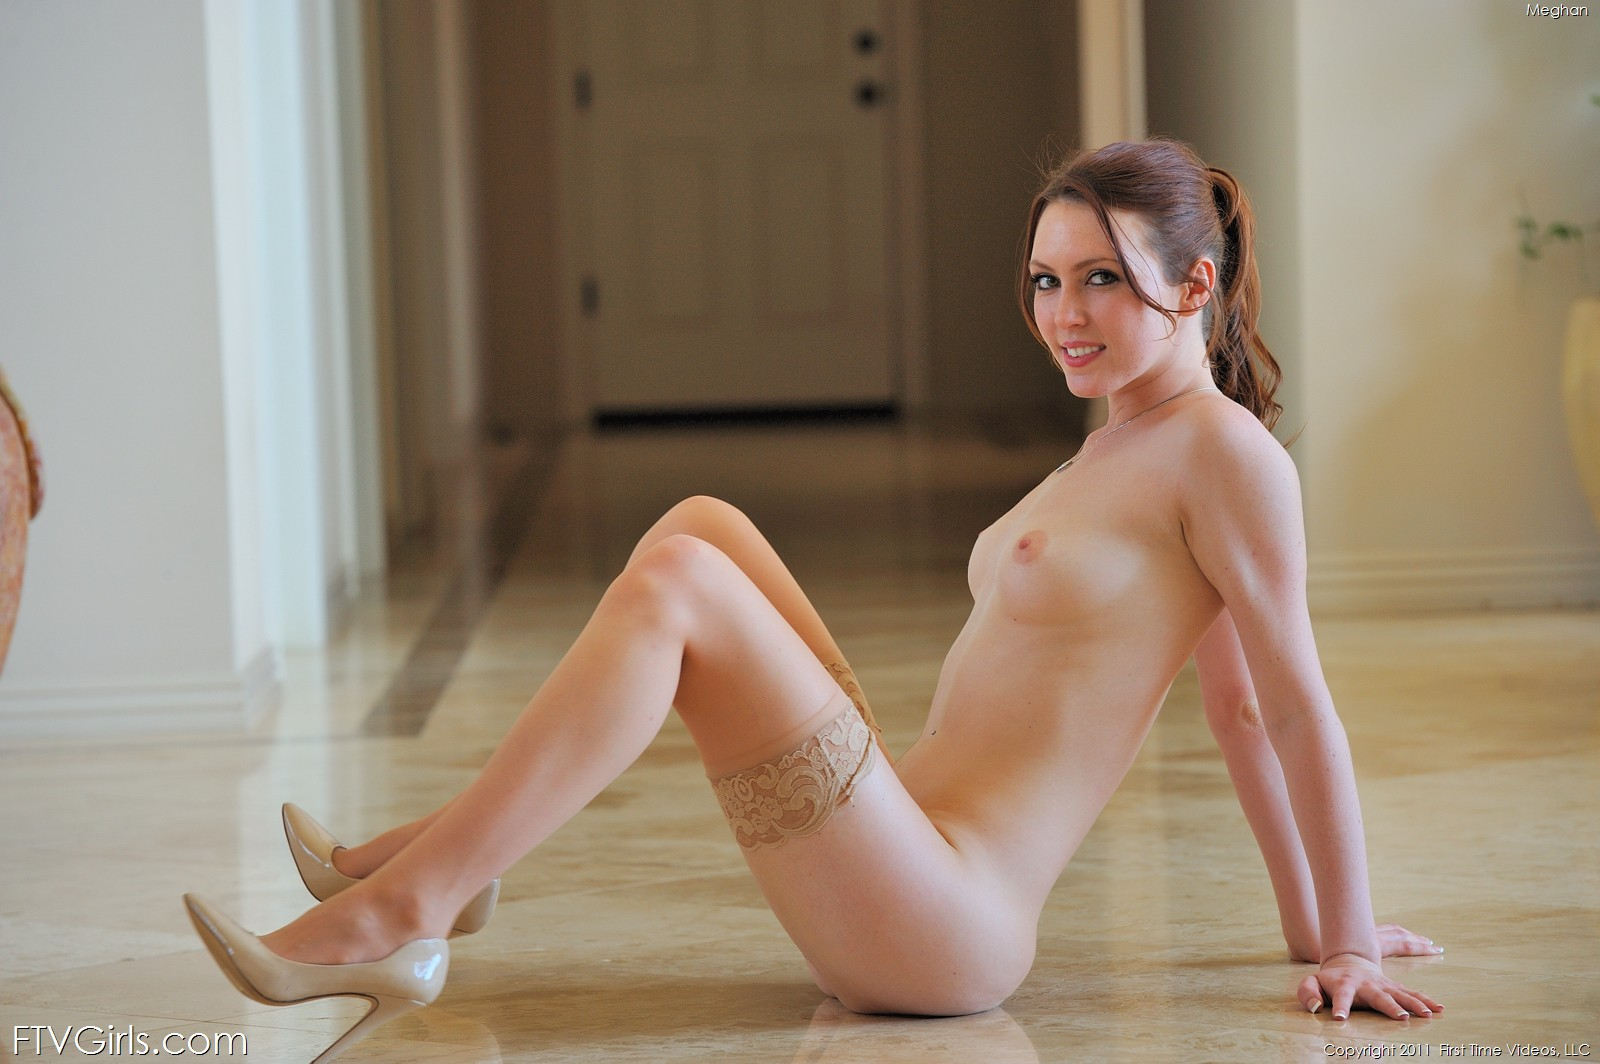 Pantyhose and sock models nude